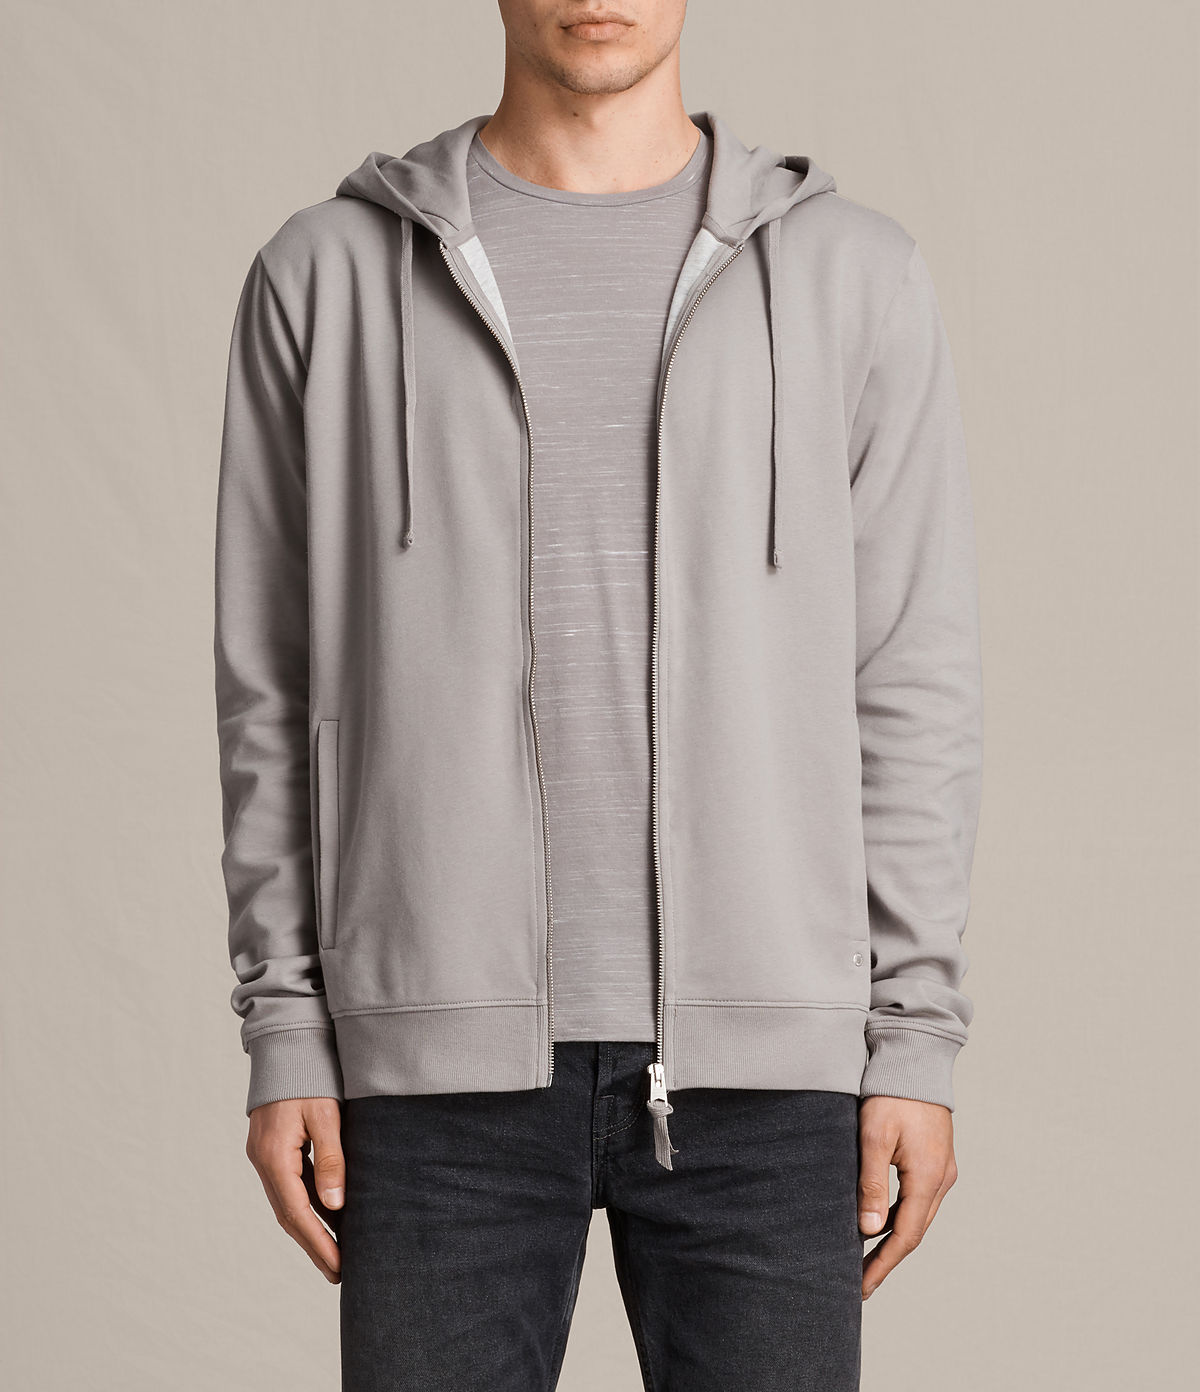 All Saints DE Eason Hoody